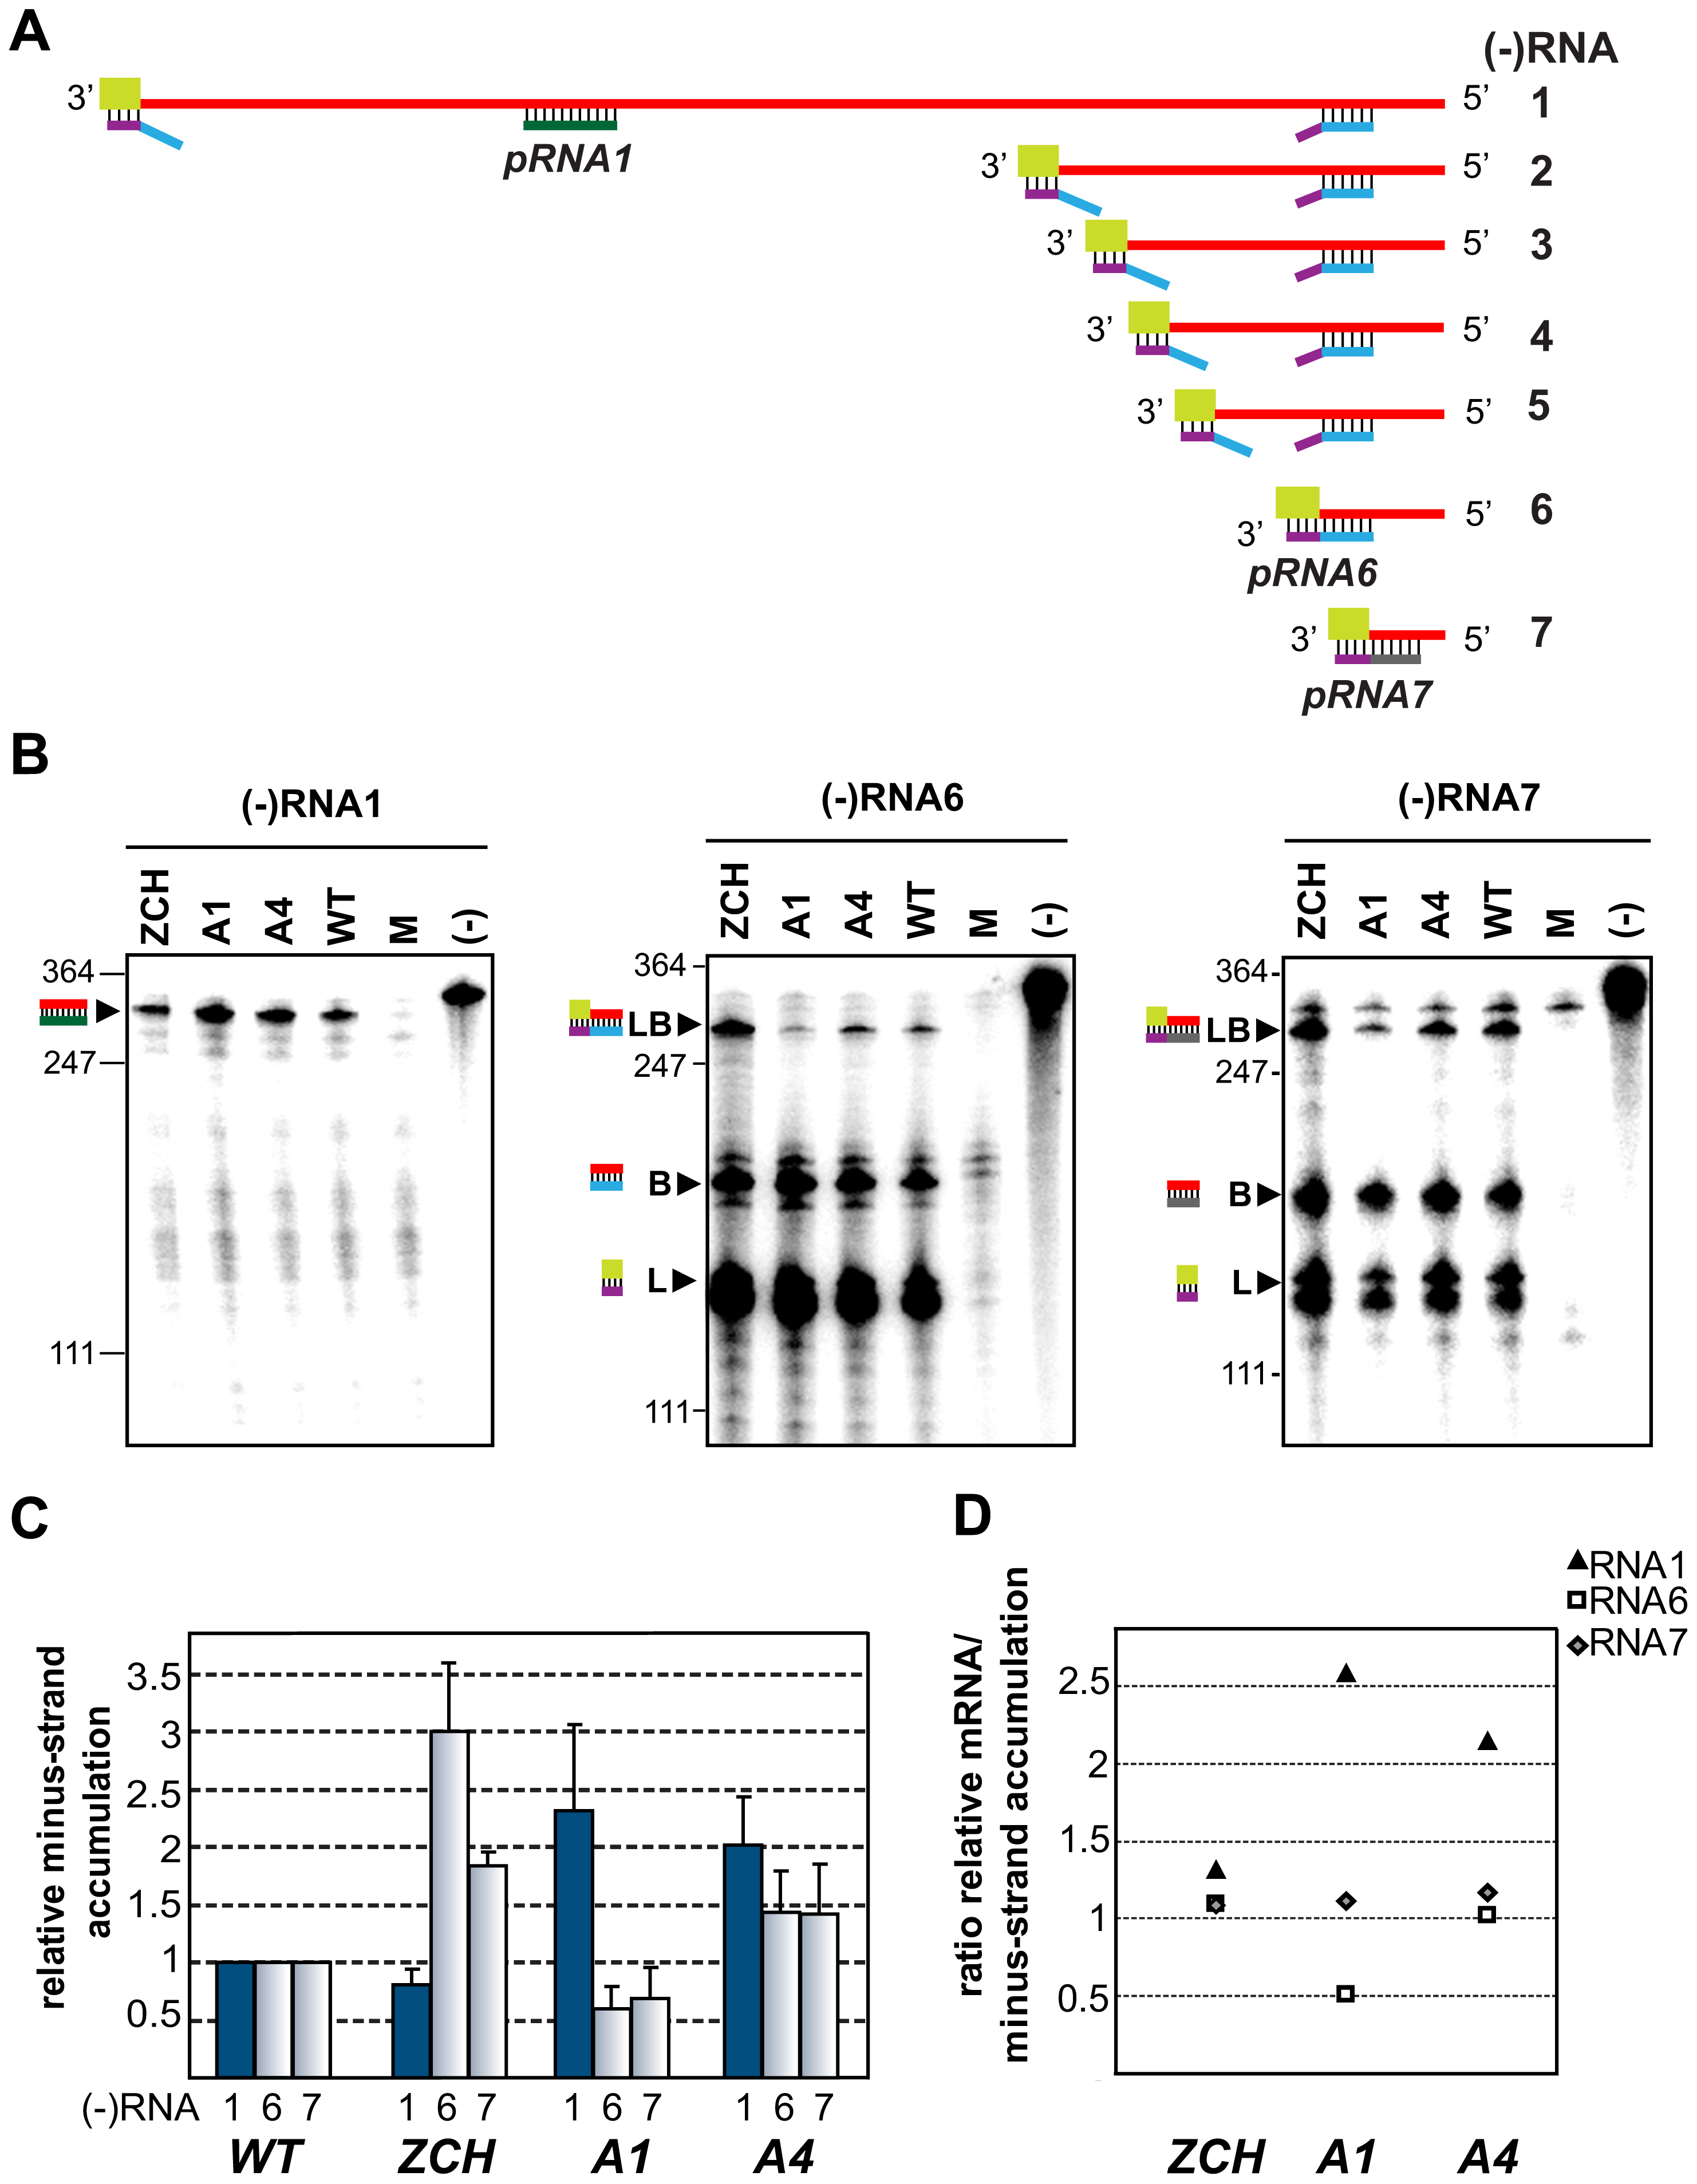 Minus-strand RNA accumulation is also modulated by mutations in nsp1.